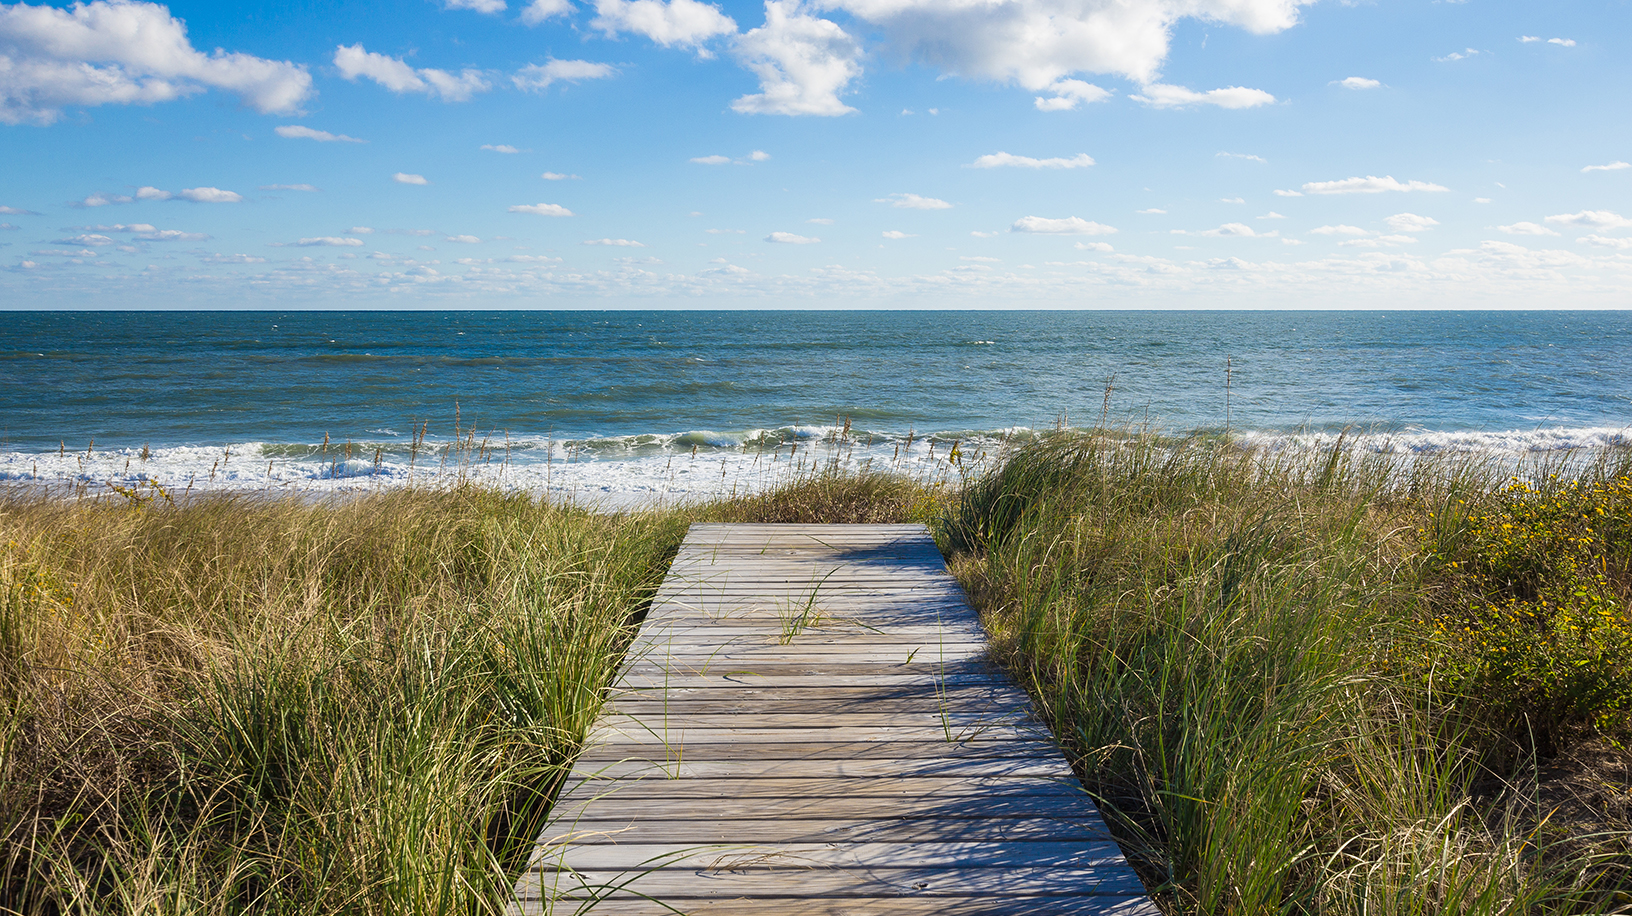 How Far in Advance Should I Plan My Trip to the Outer Banks?